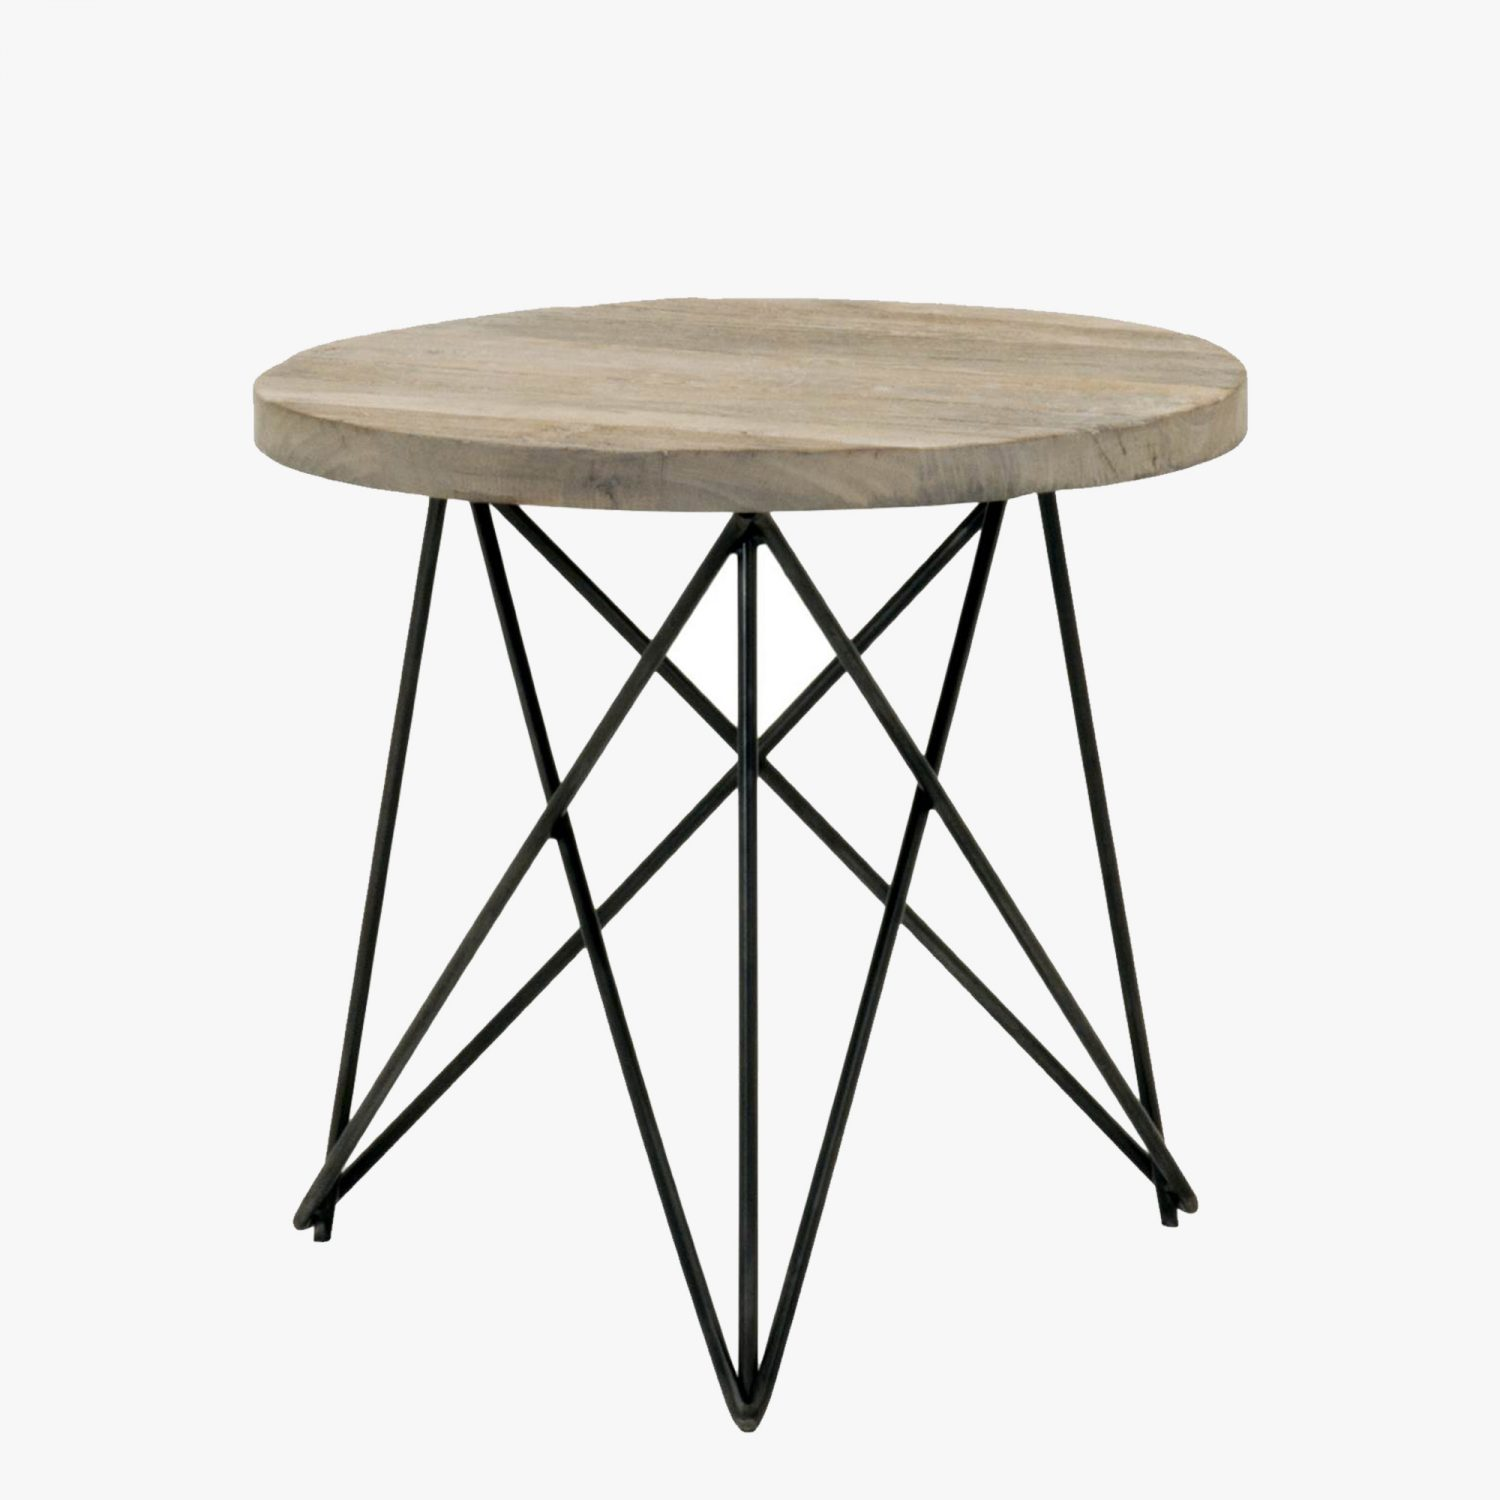 castille reclaimed wood accent table tables dear keaton side outdoor foyer chest furniture ikea garden storage box address plaques backyard nic room essentials patio astoria grand